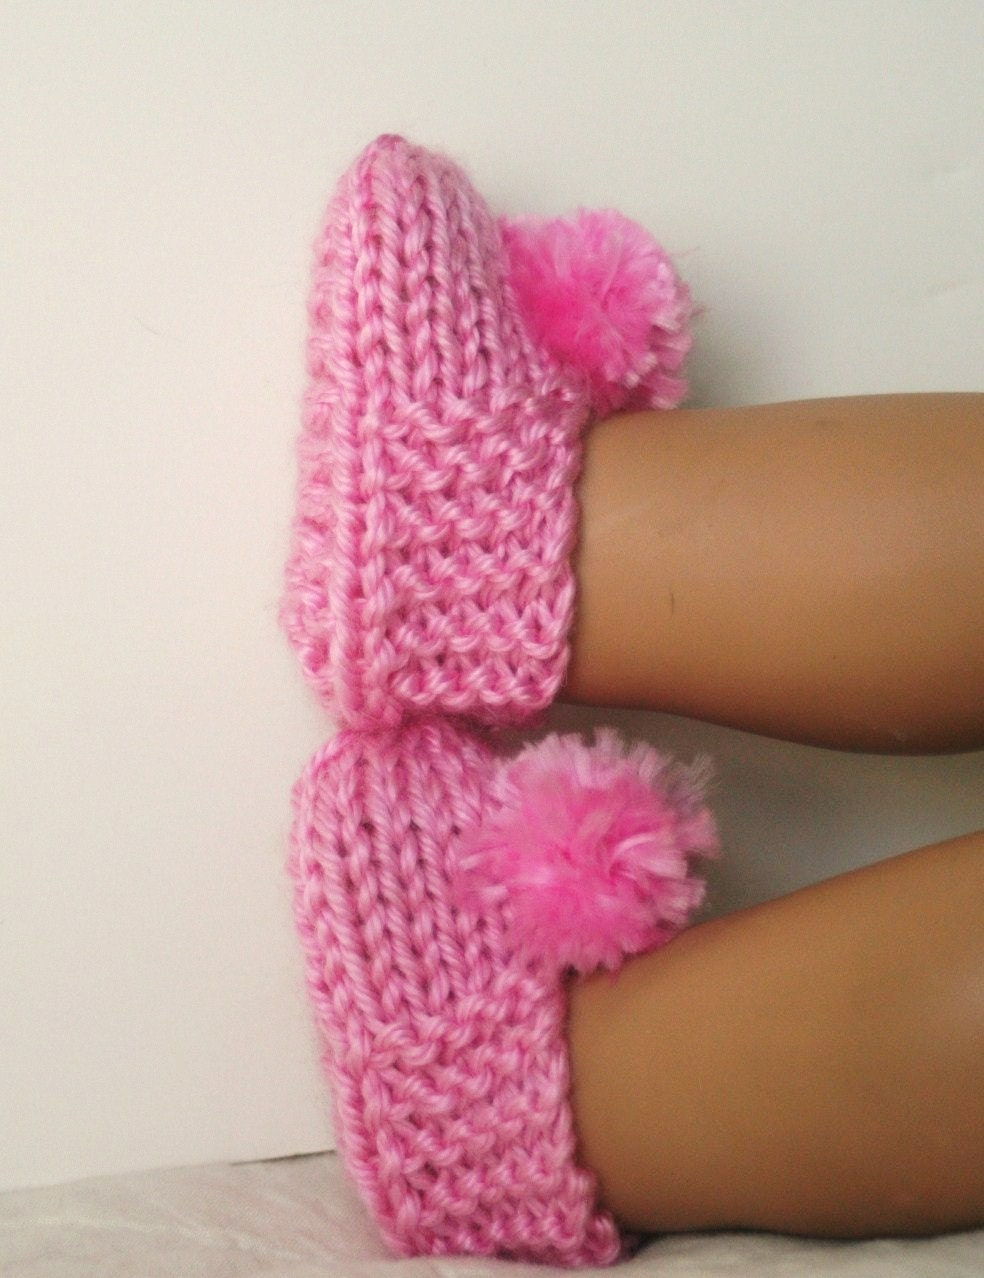 American Girl Doll Slippers, knitted bootie